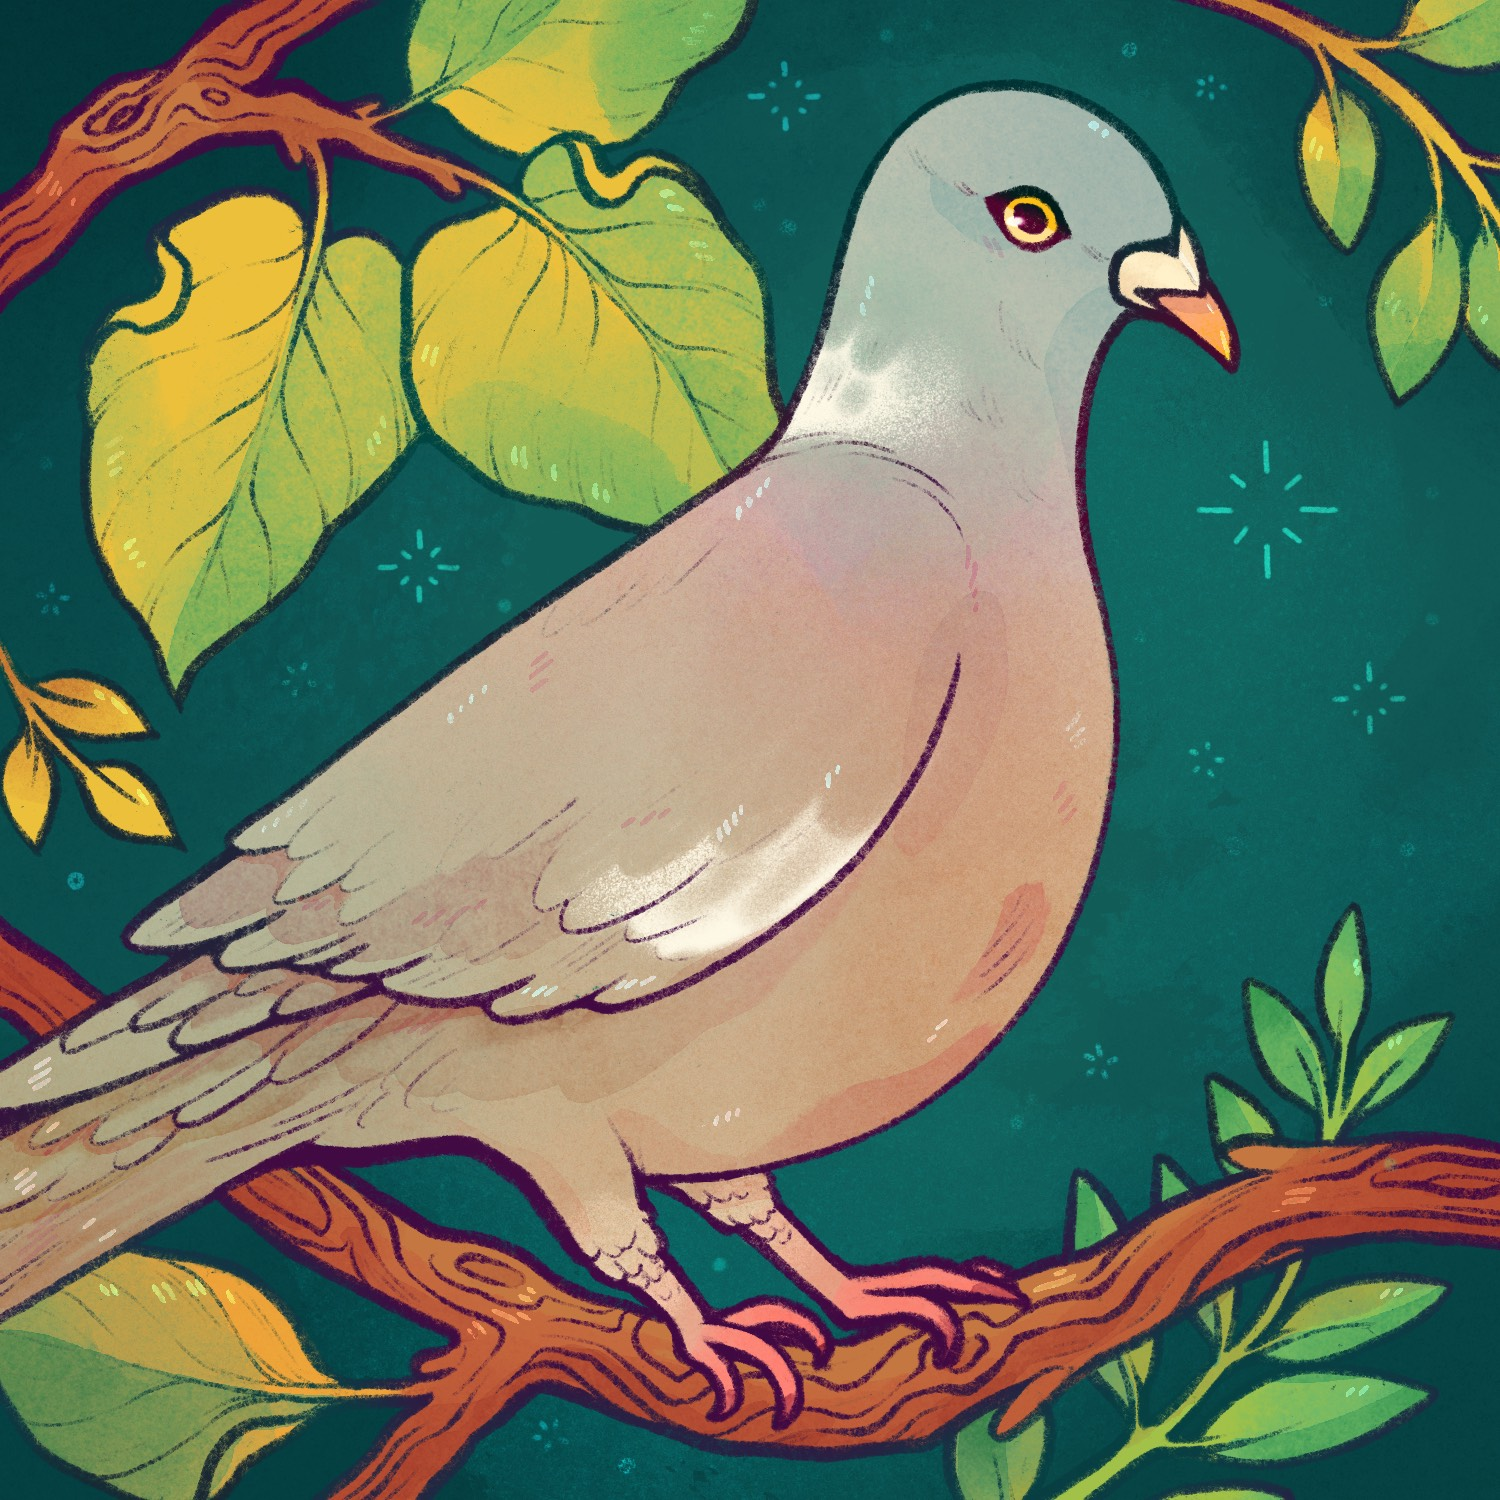 a cartoon pigeon sitting in a tree surrounded by leaves. Drawn by Lianne Pflug.